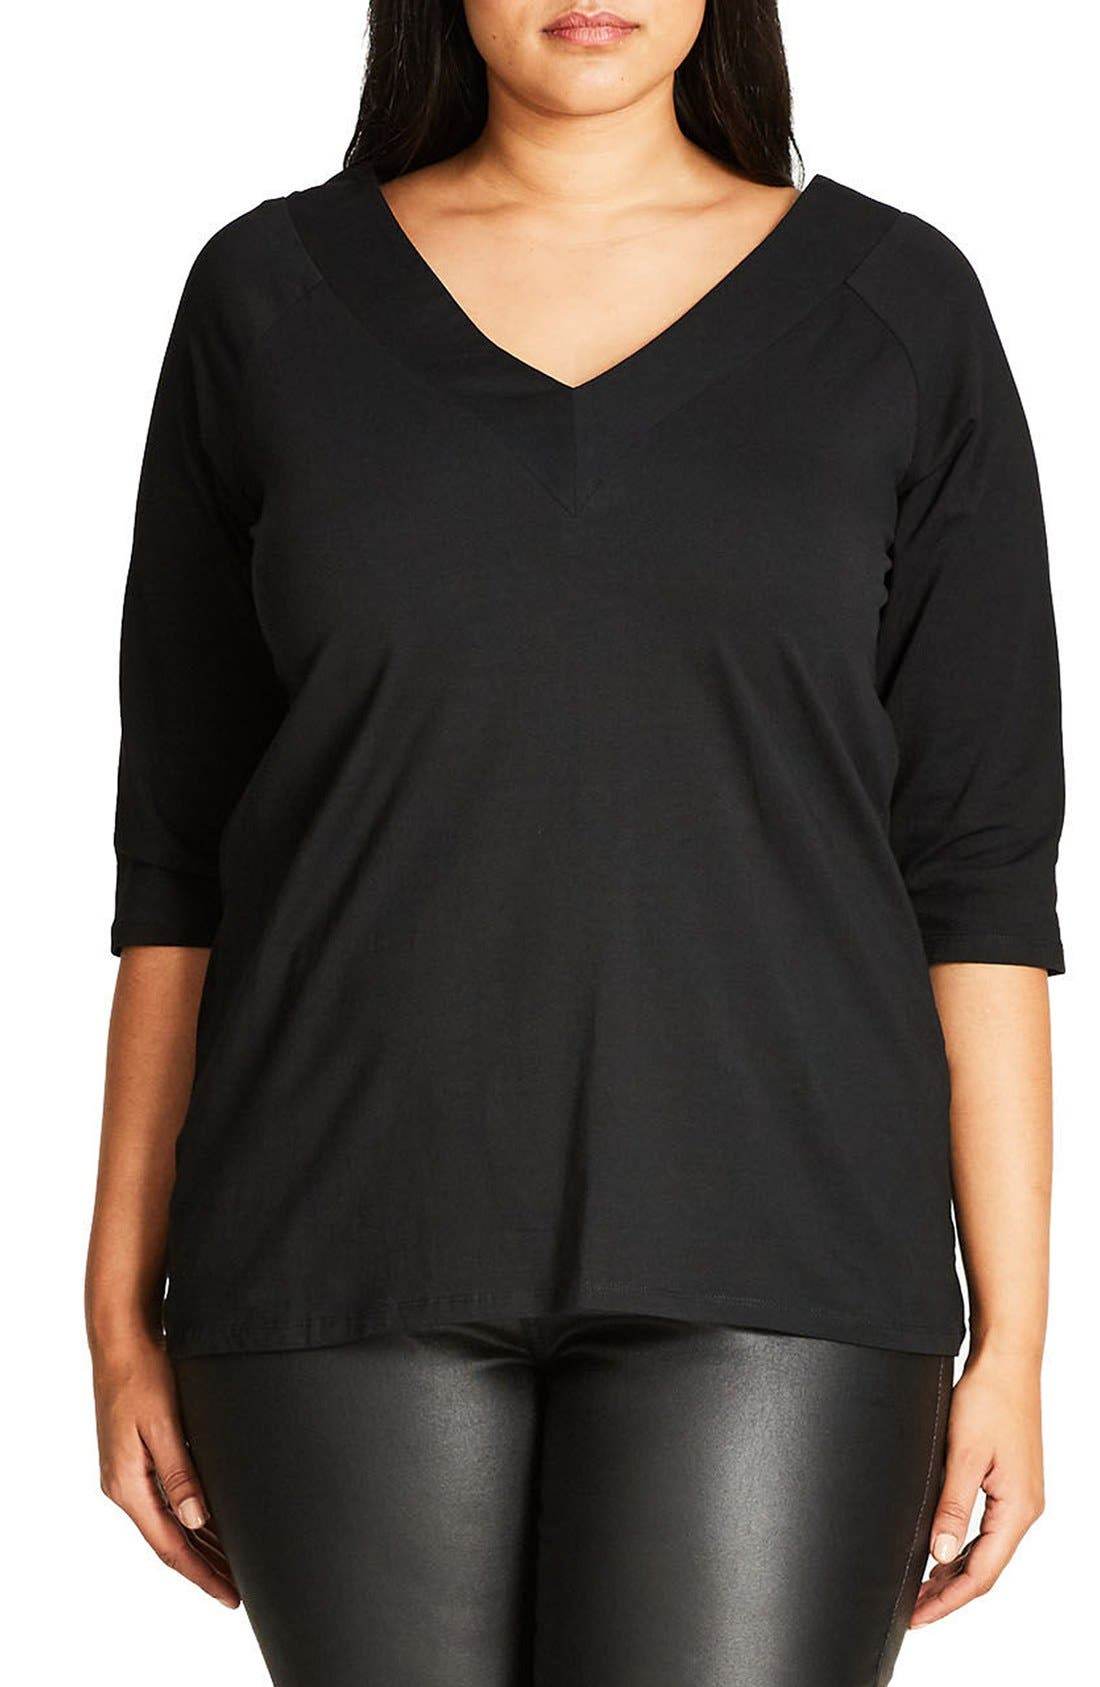 CITY CHIC V-Front Bardot Top